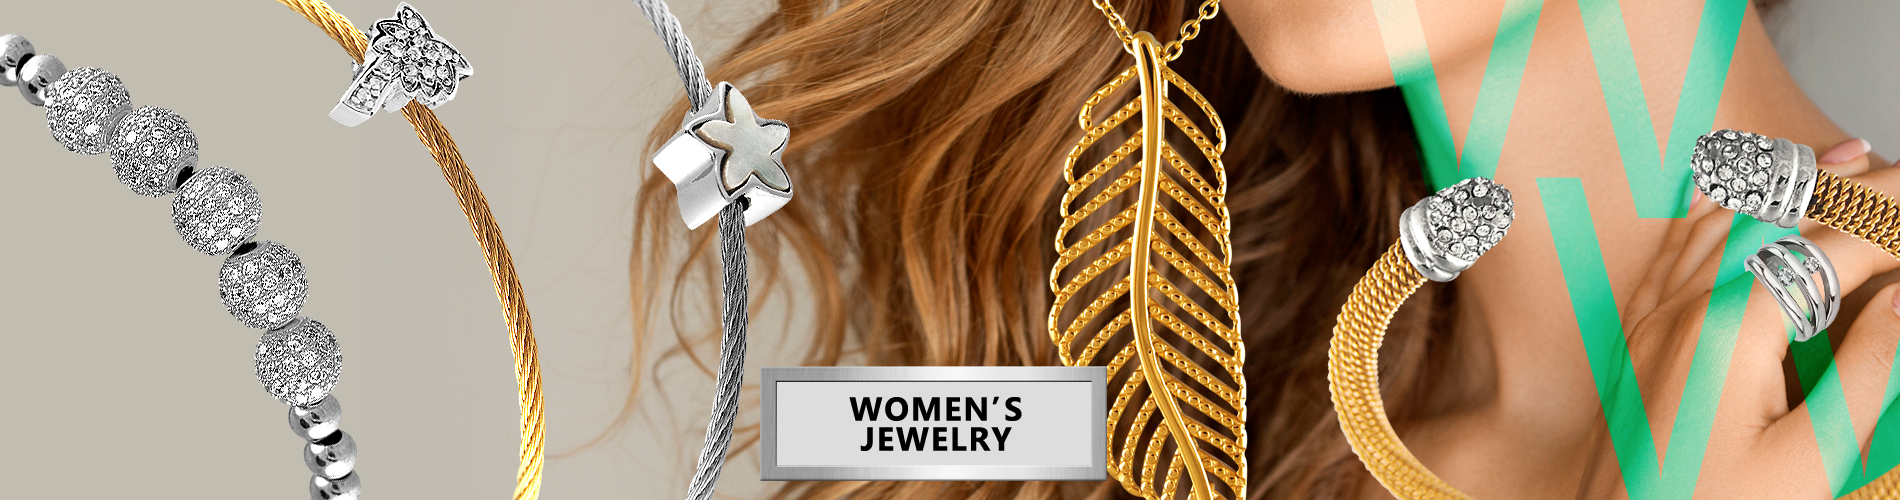 Women jewelry full